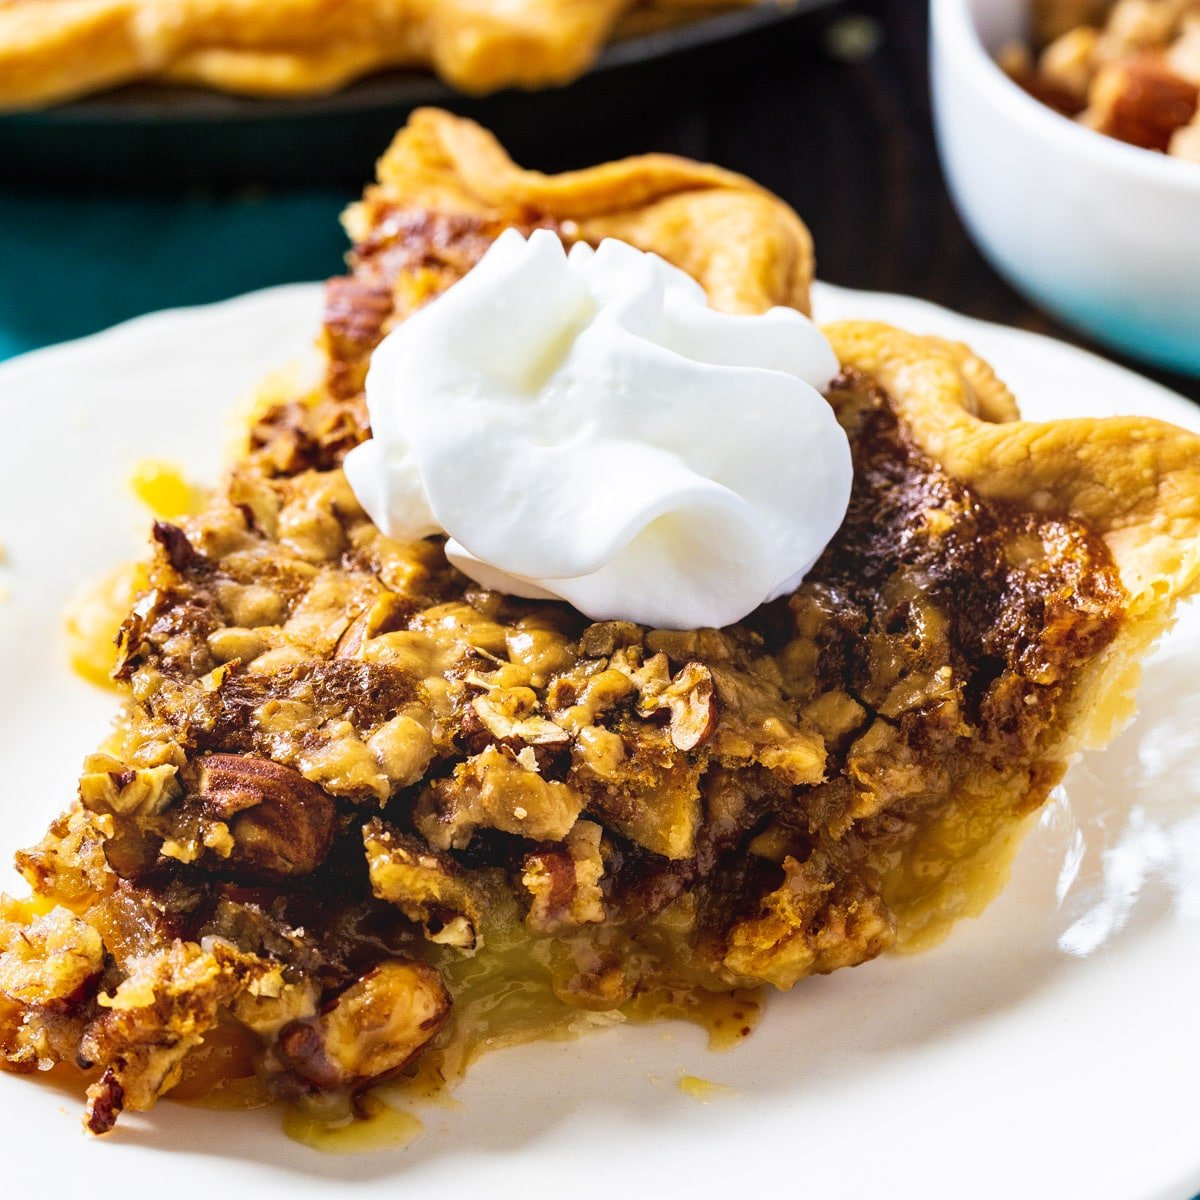 Slice of Toffee Nut Pie on a plate.